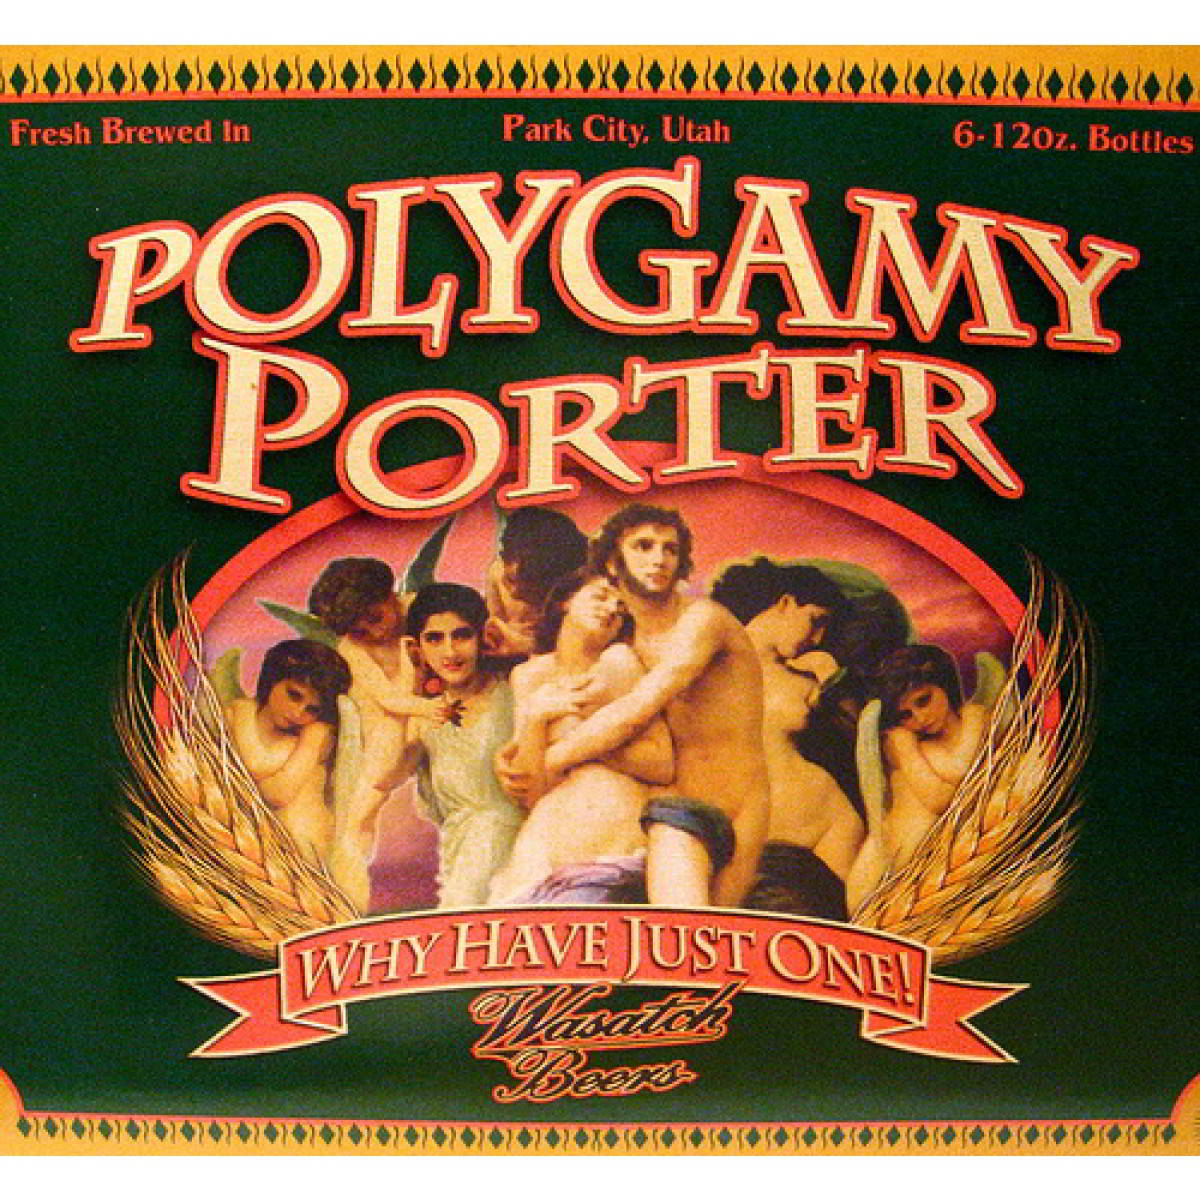 Polygamy Porter, Wasatch Brewery, Utah